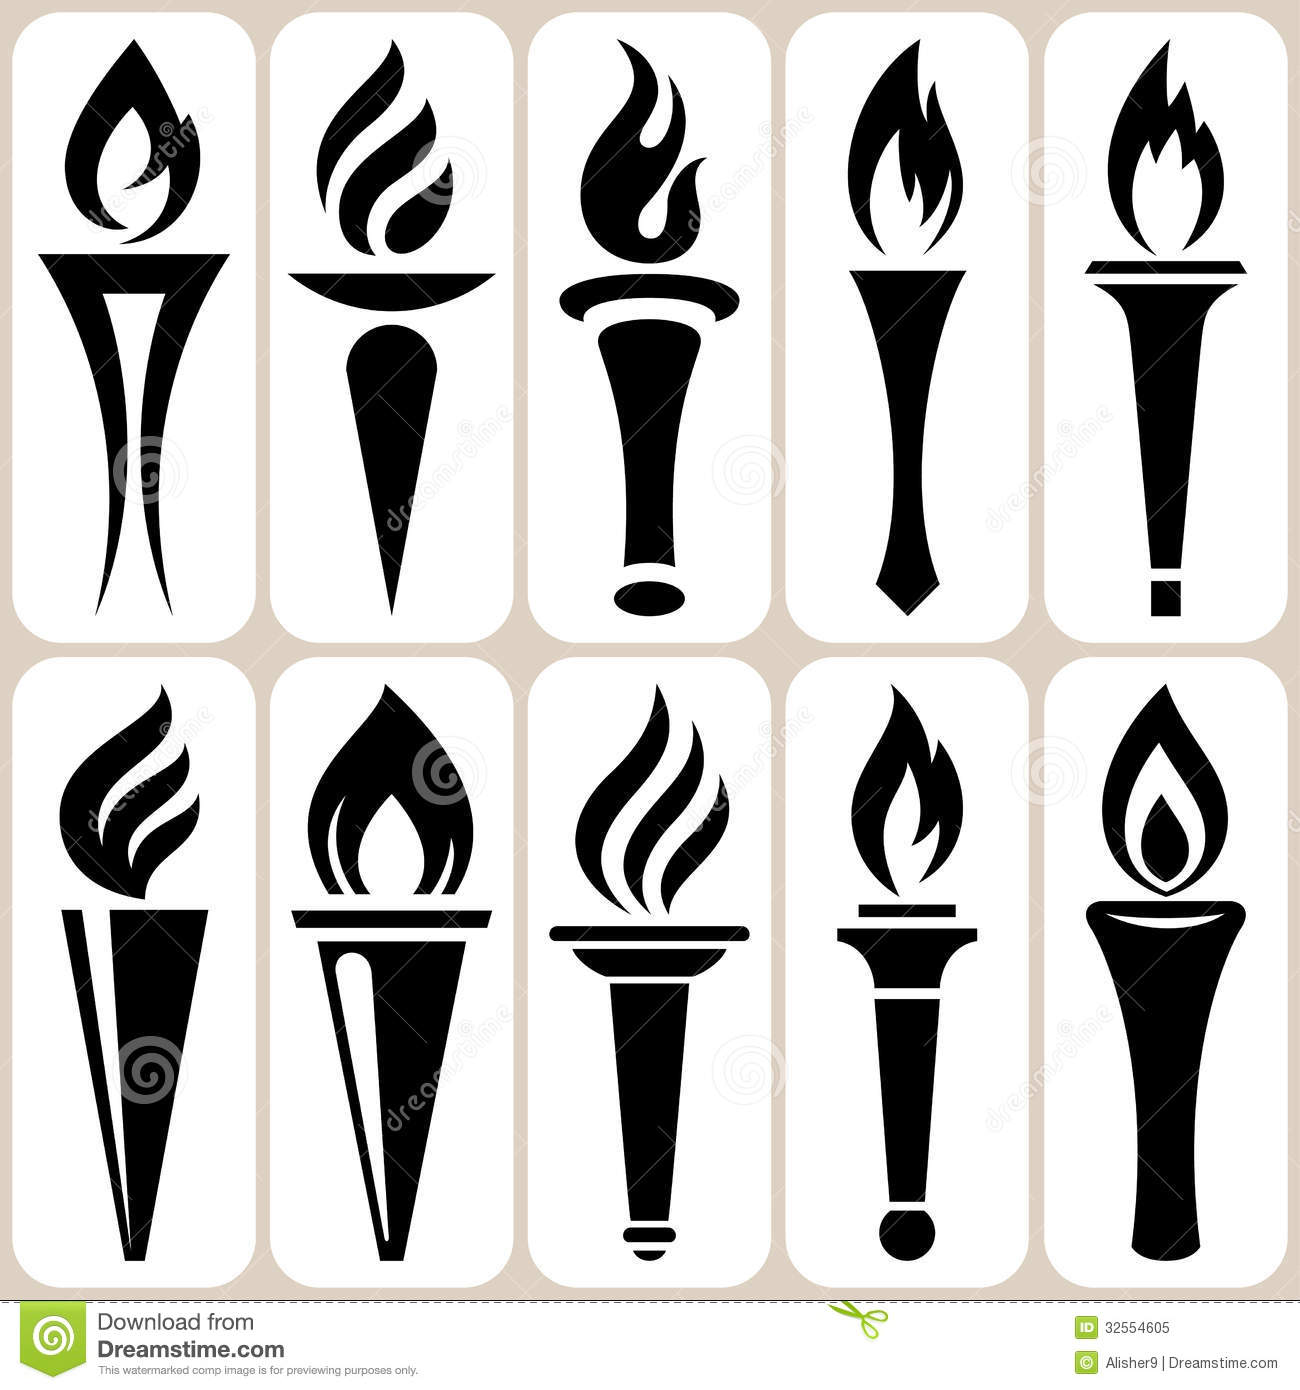 Torch Icons Set Royalty Free Stock Photo - Image: 32554605